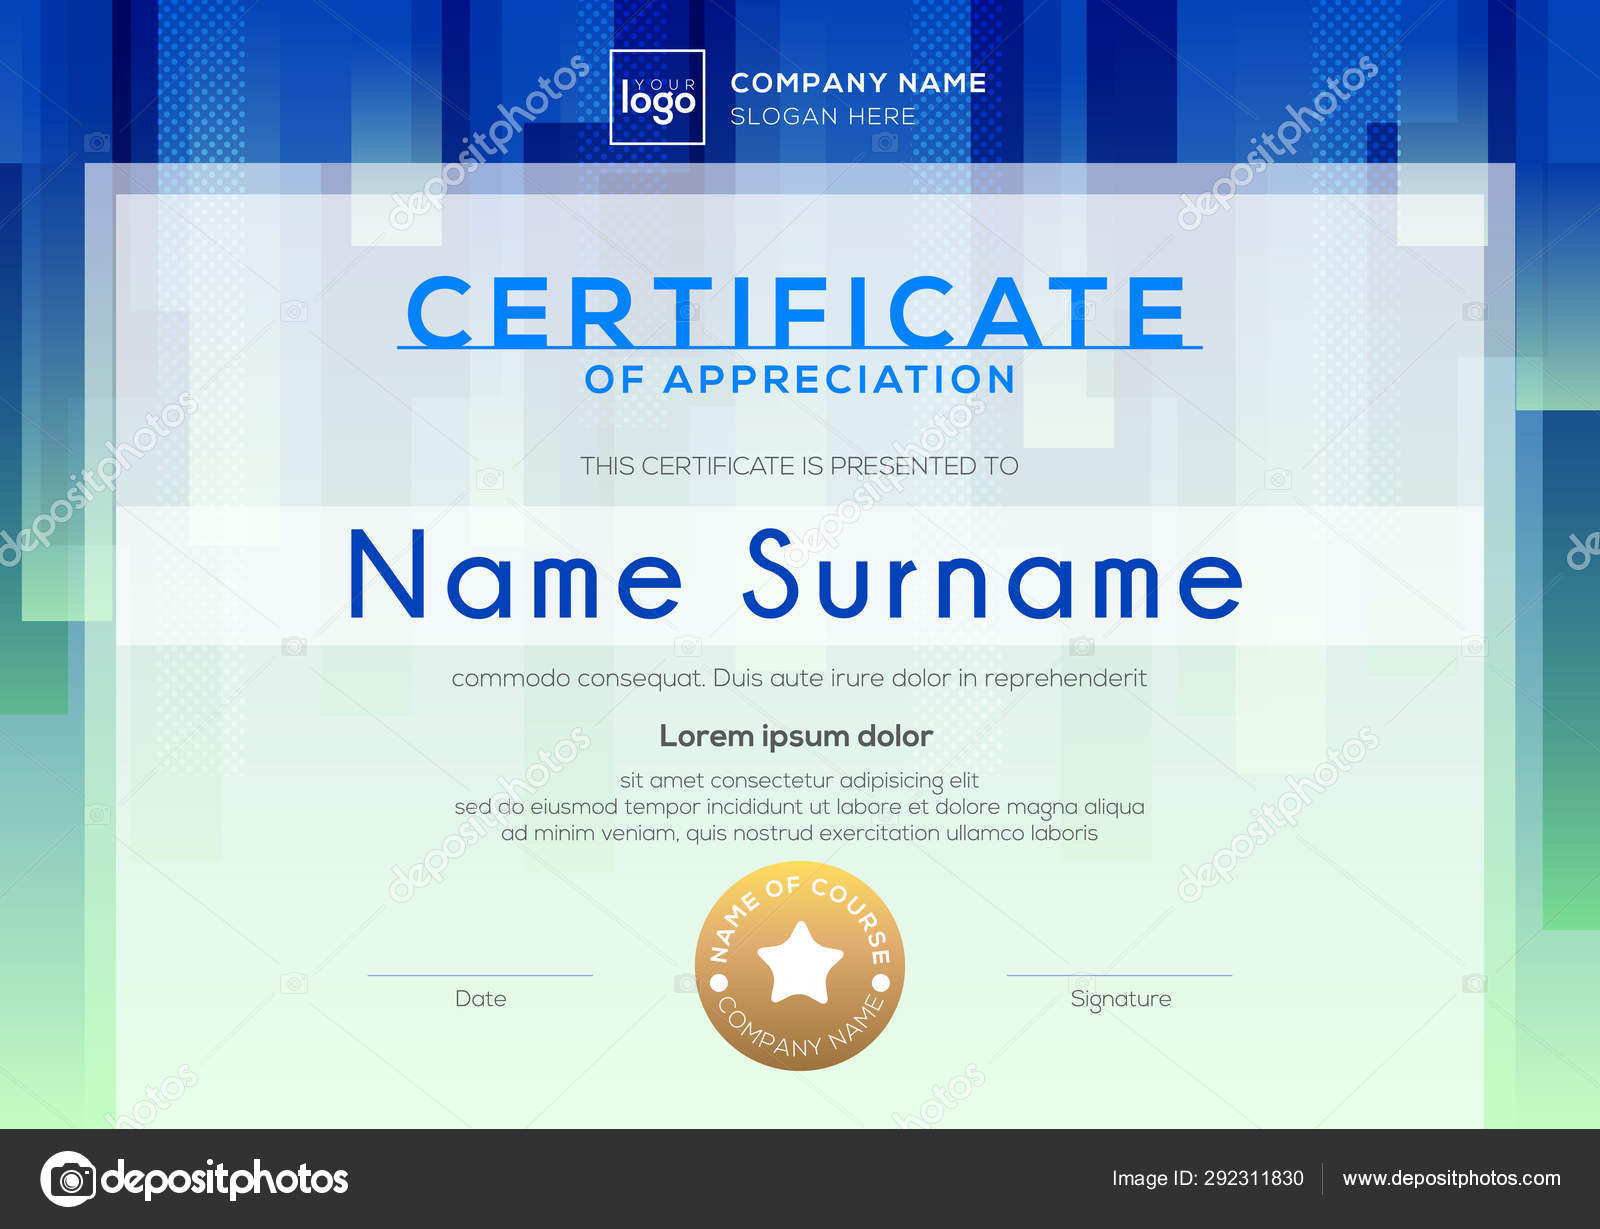 Template Certificate Of Appreciation Background Design